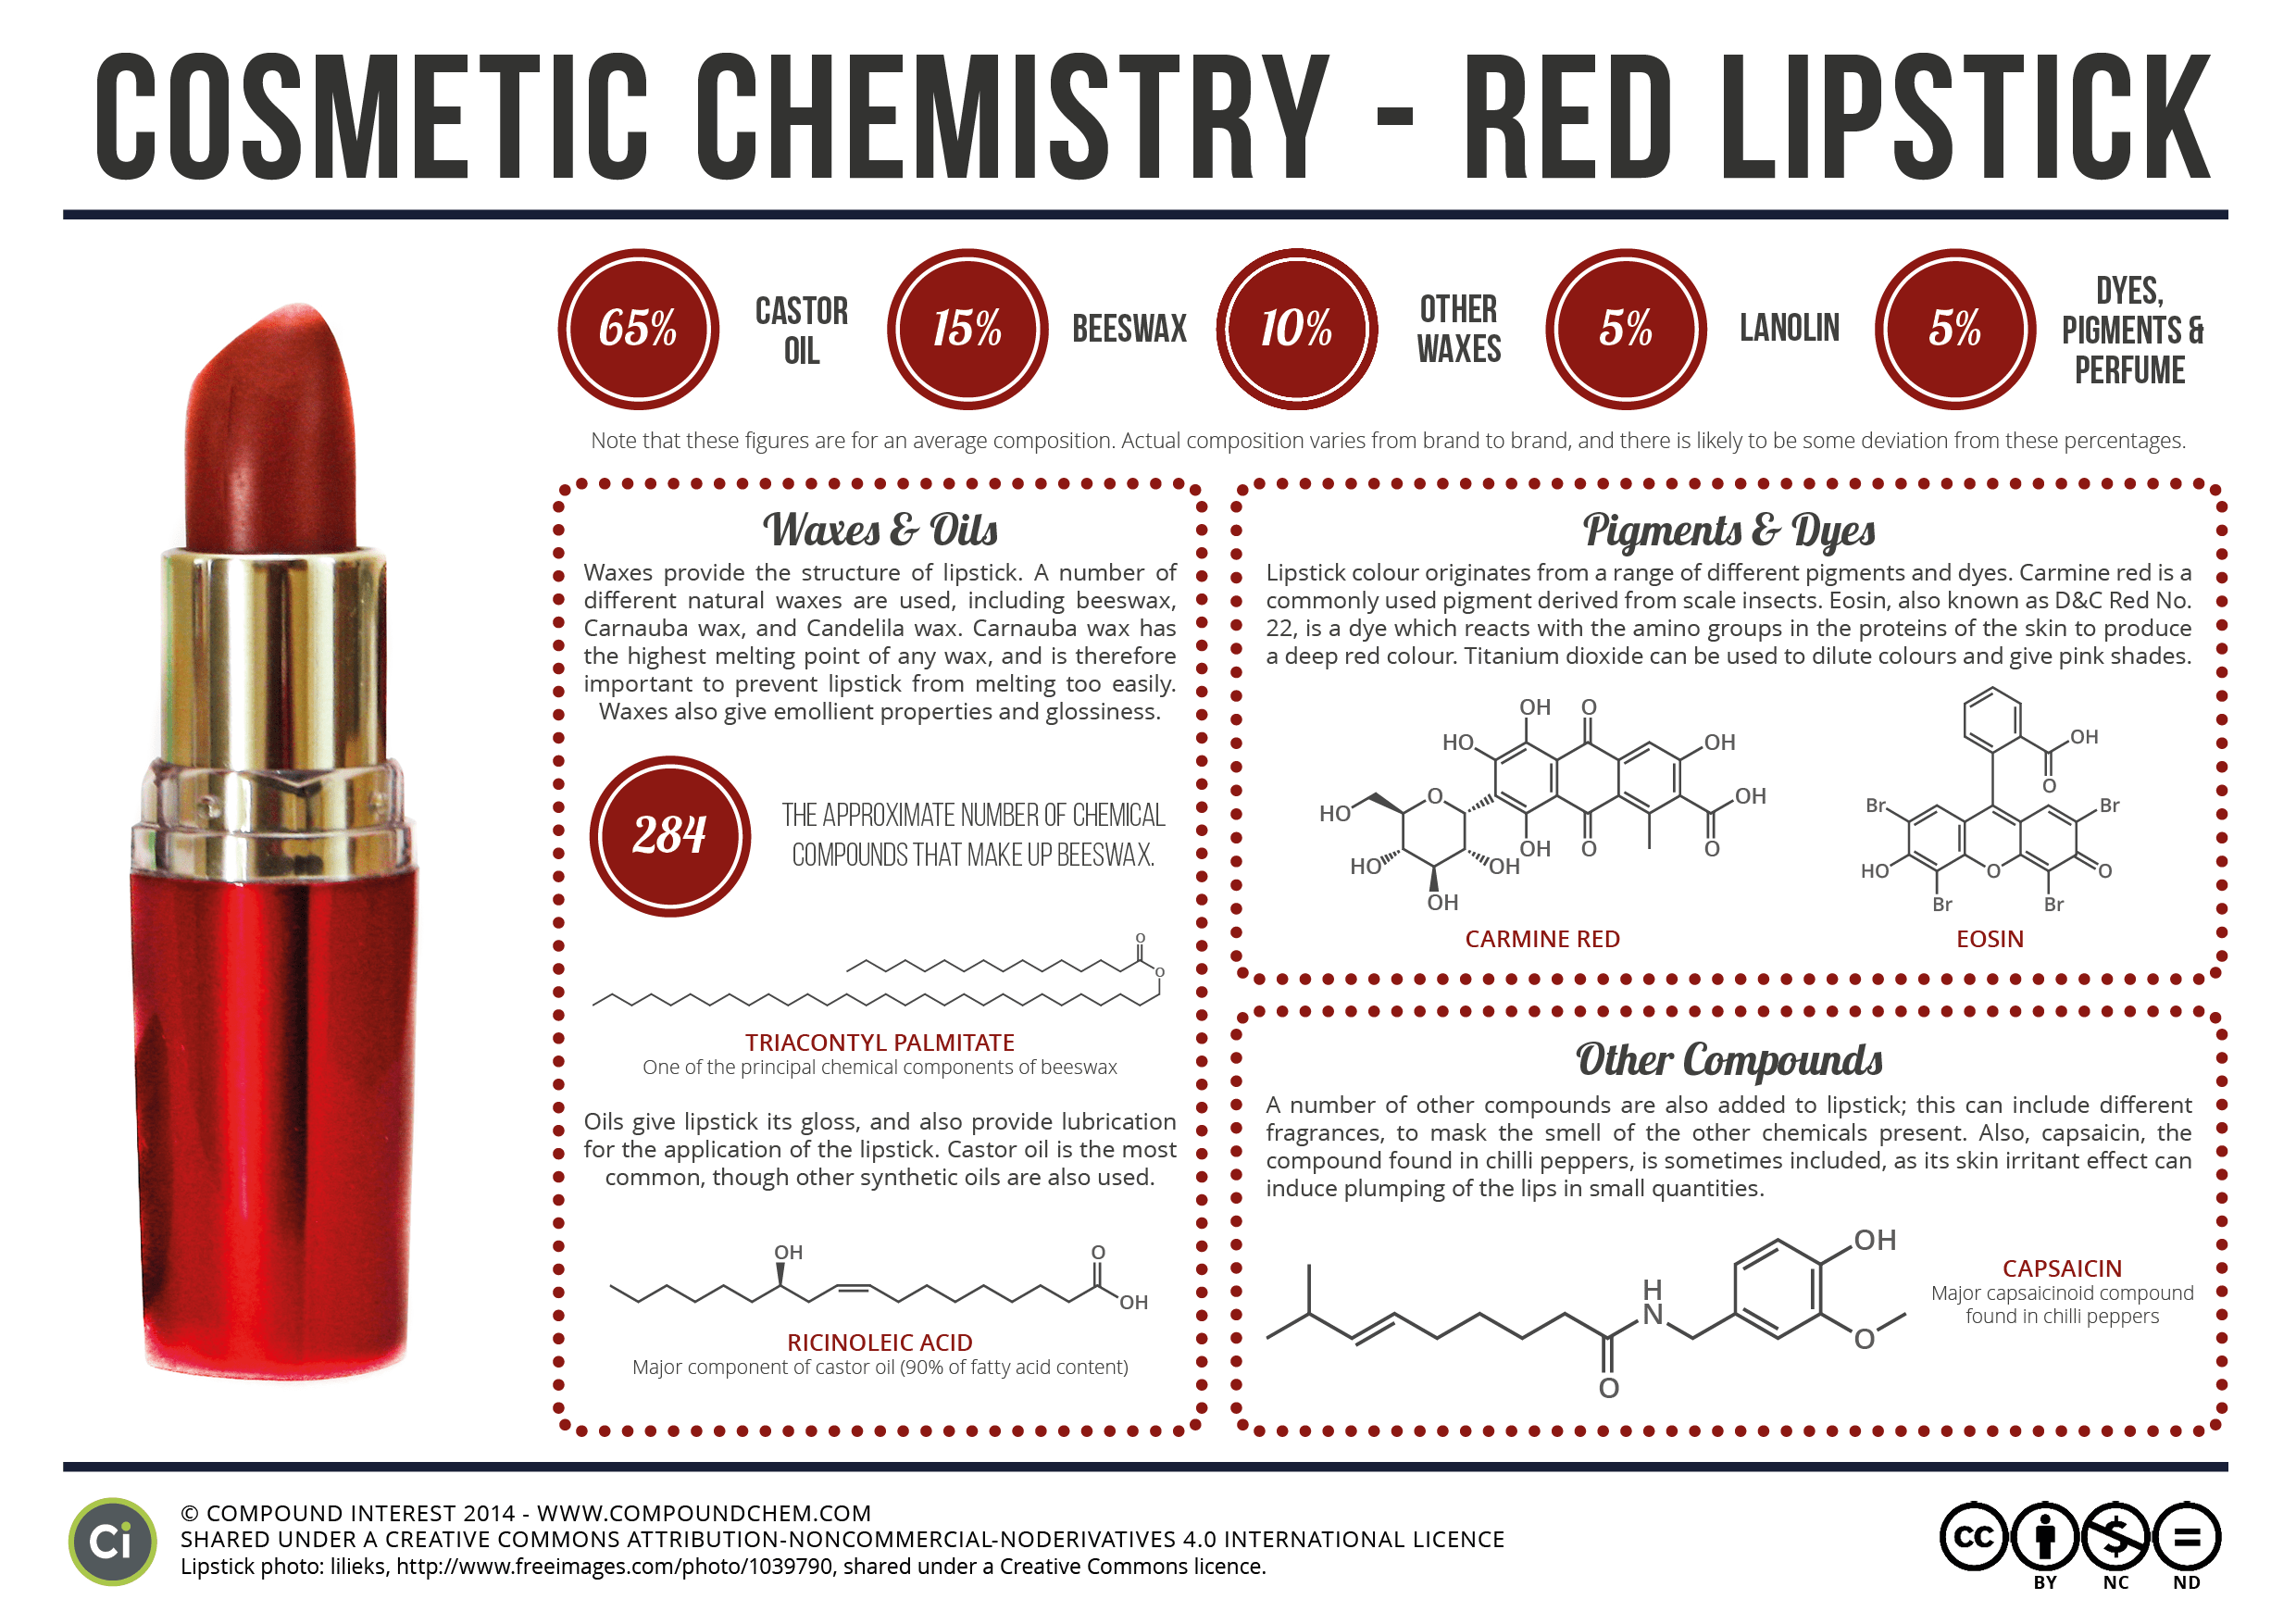 The beautiful chemicals in lipstick: Compound Interest